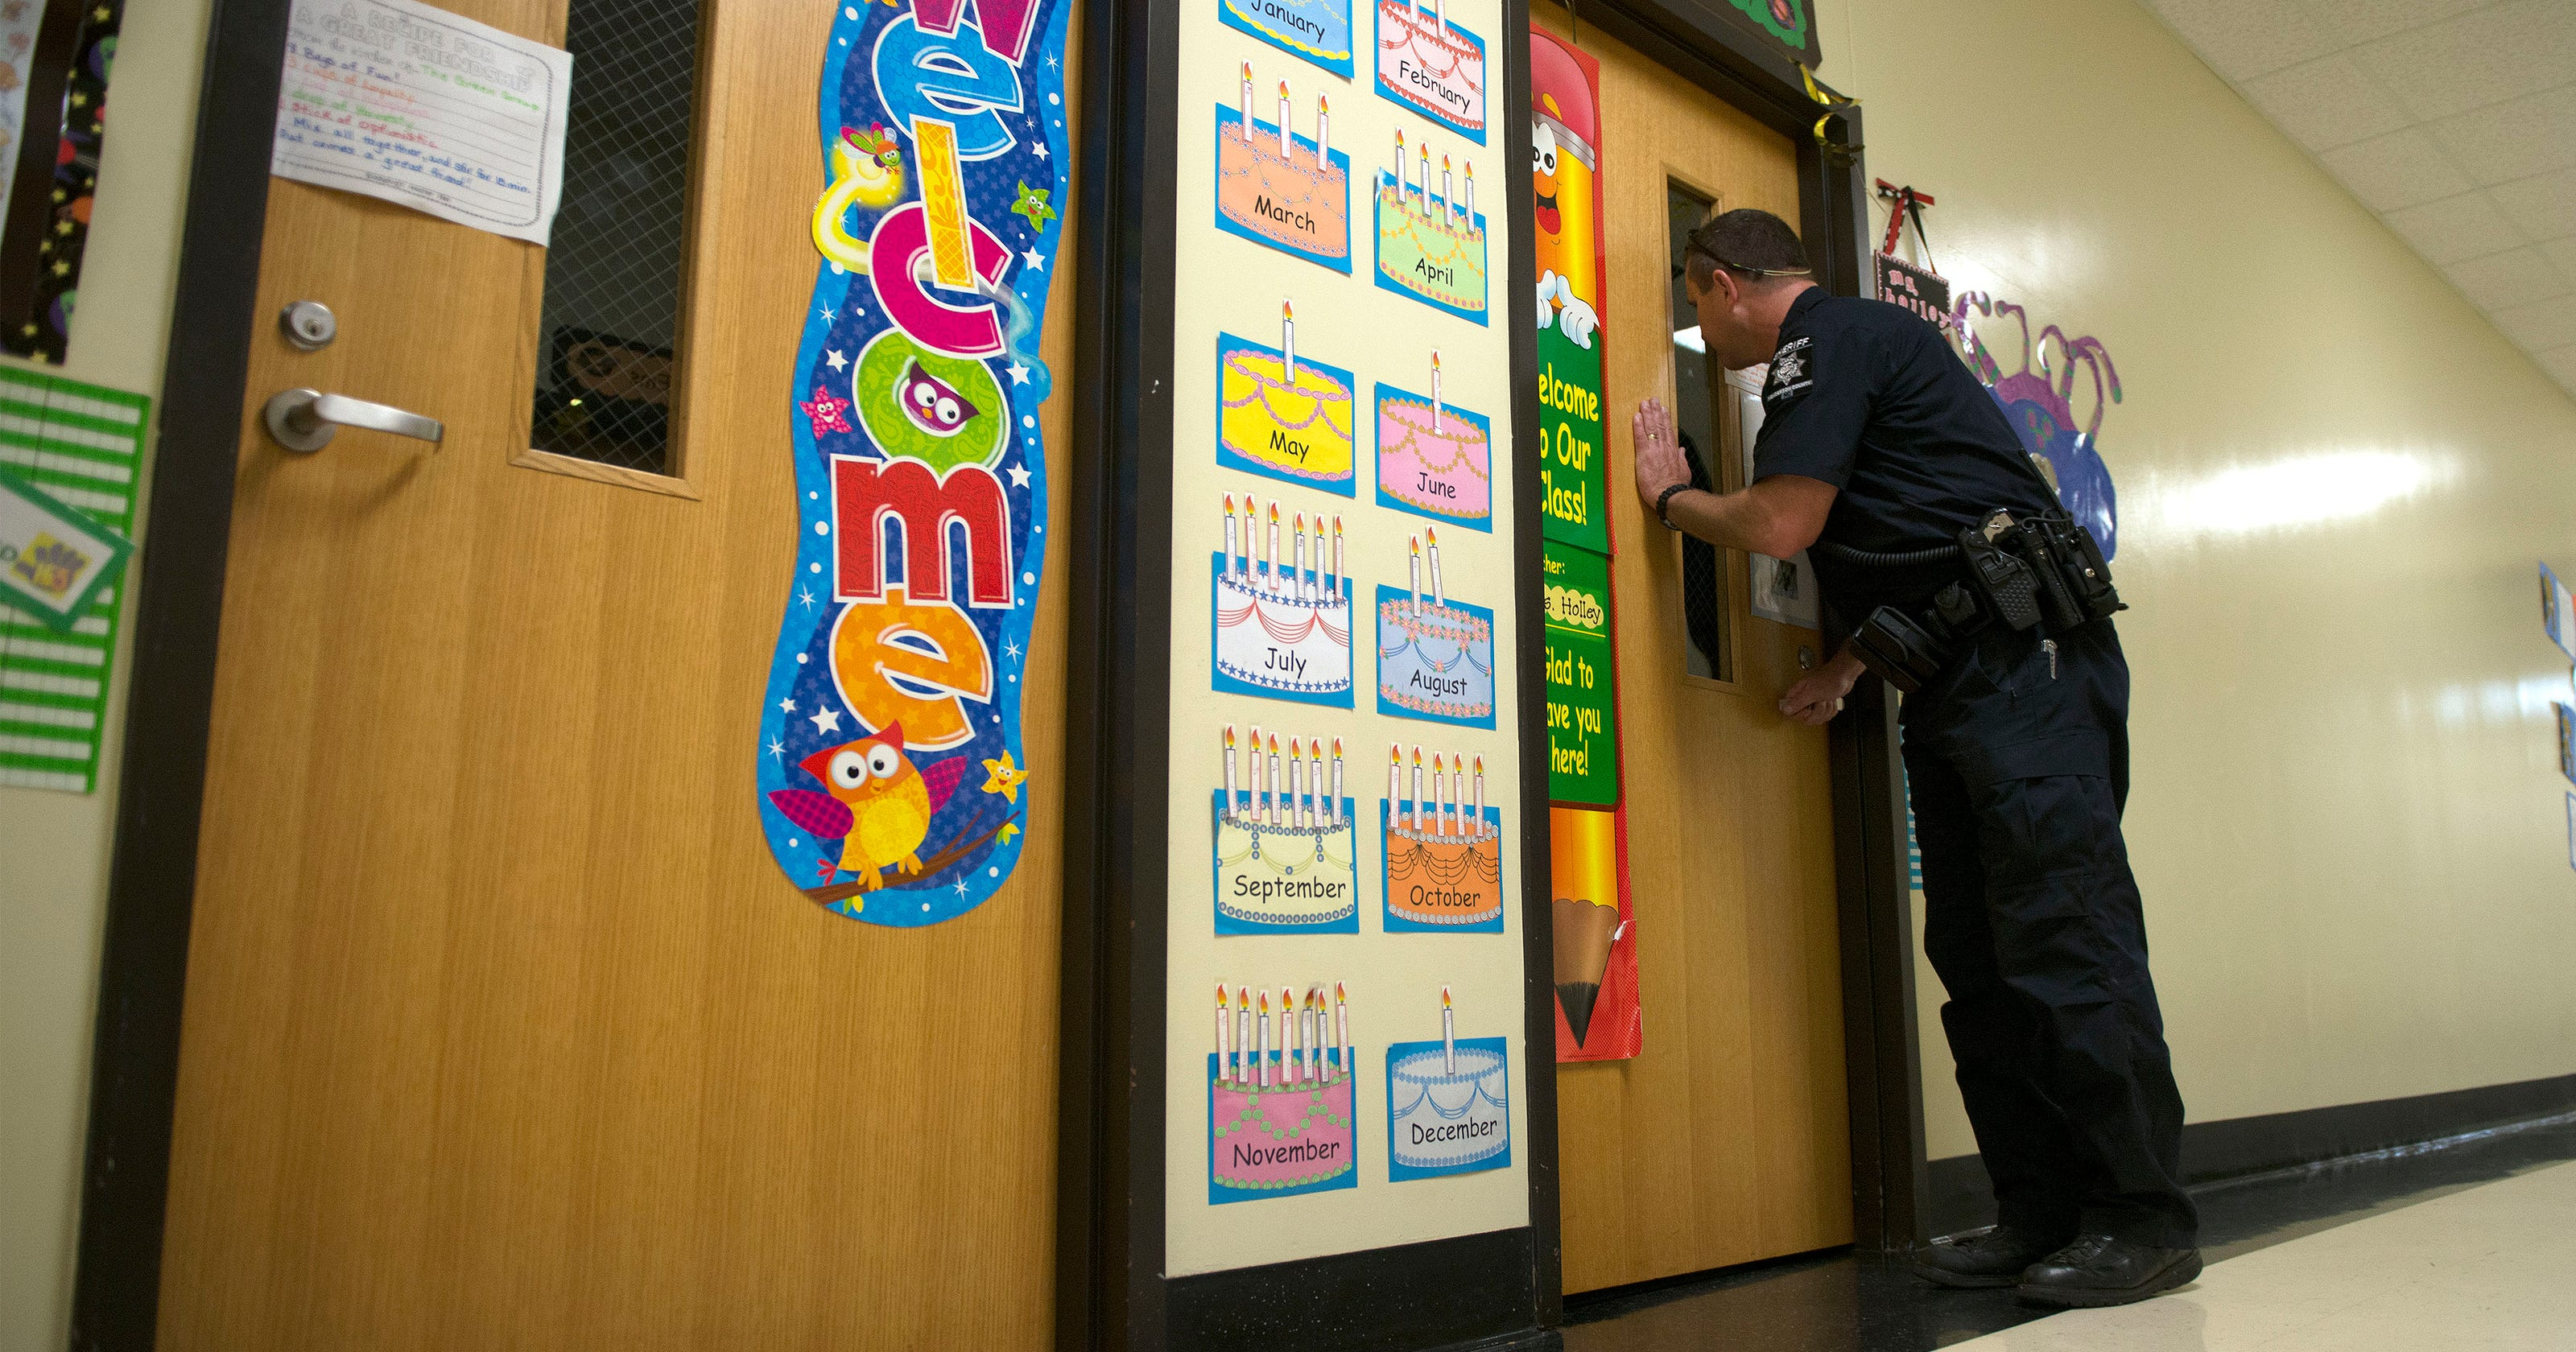 WNC schools have already seen several lockdowns this year